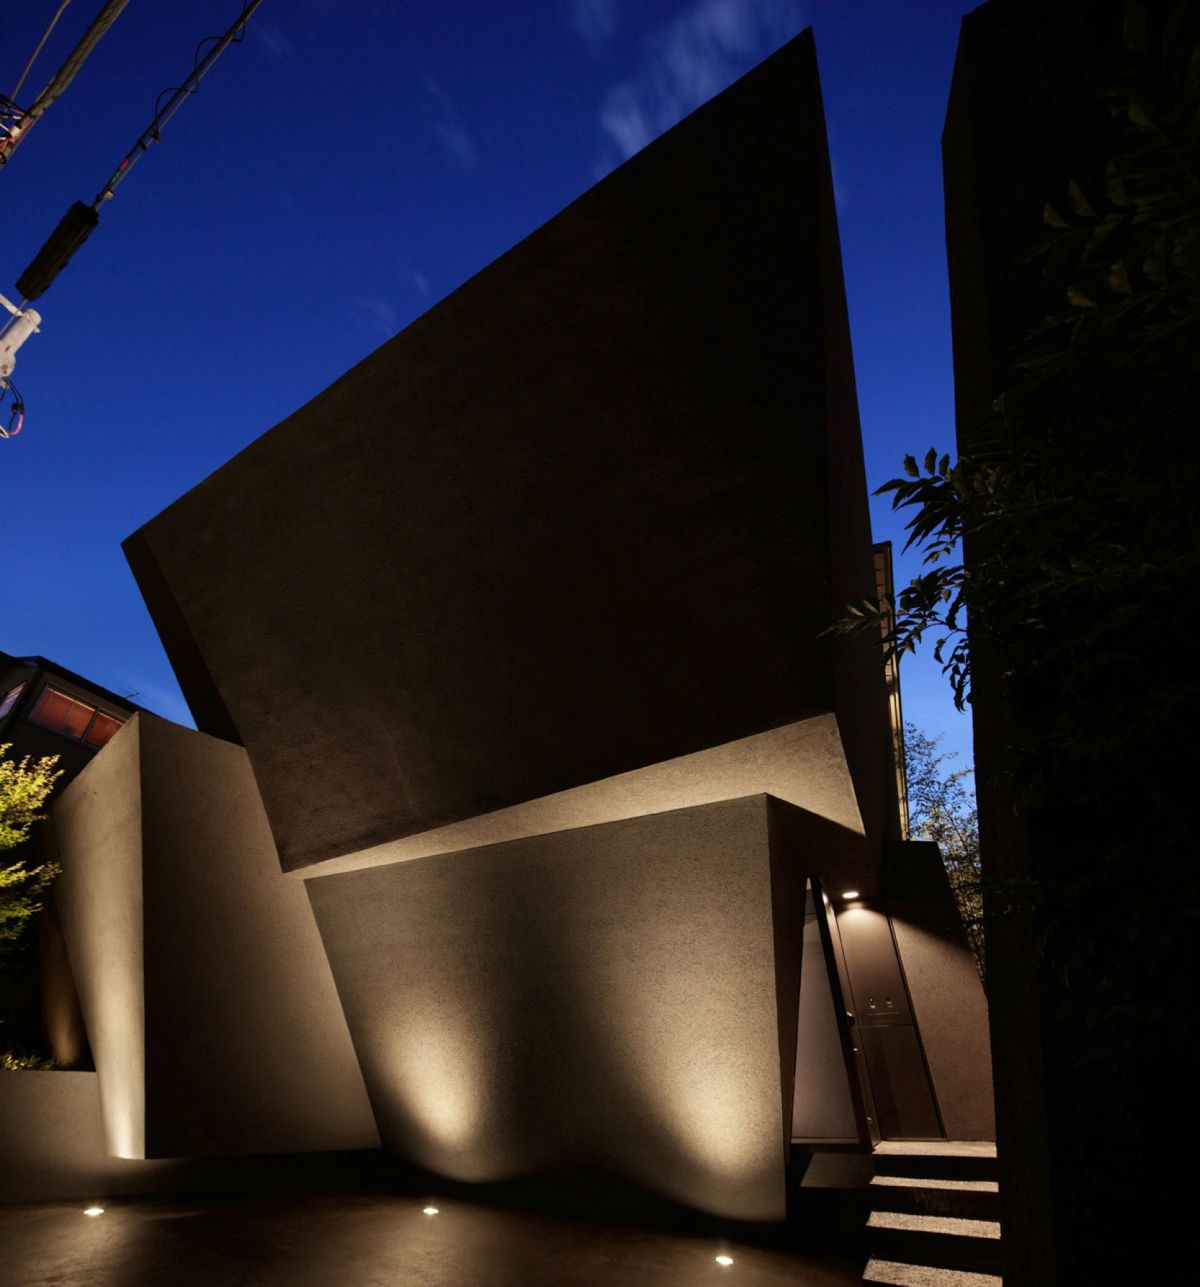 The SRK residence in Tokyo looks artistic at night